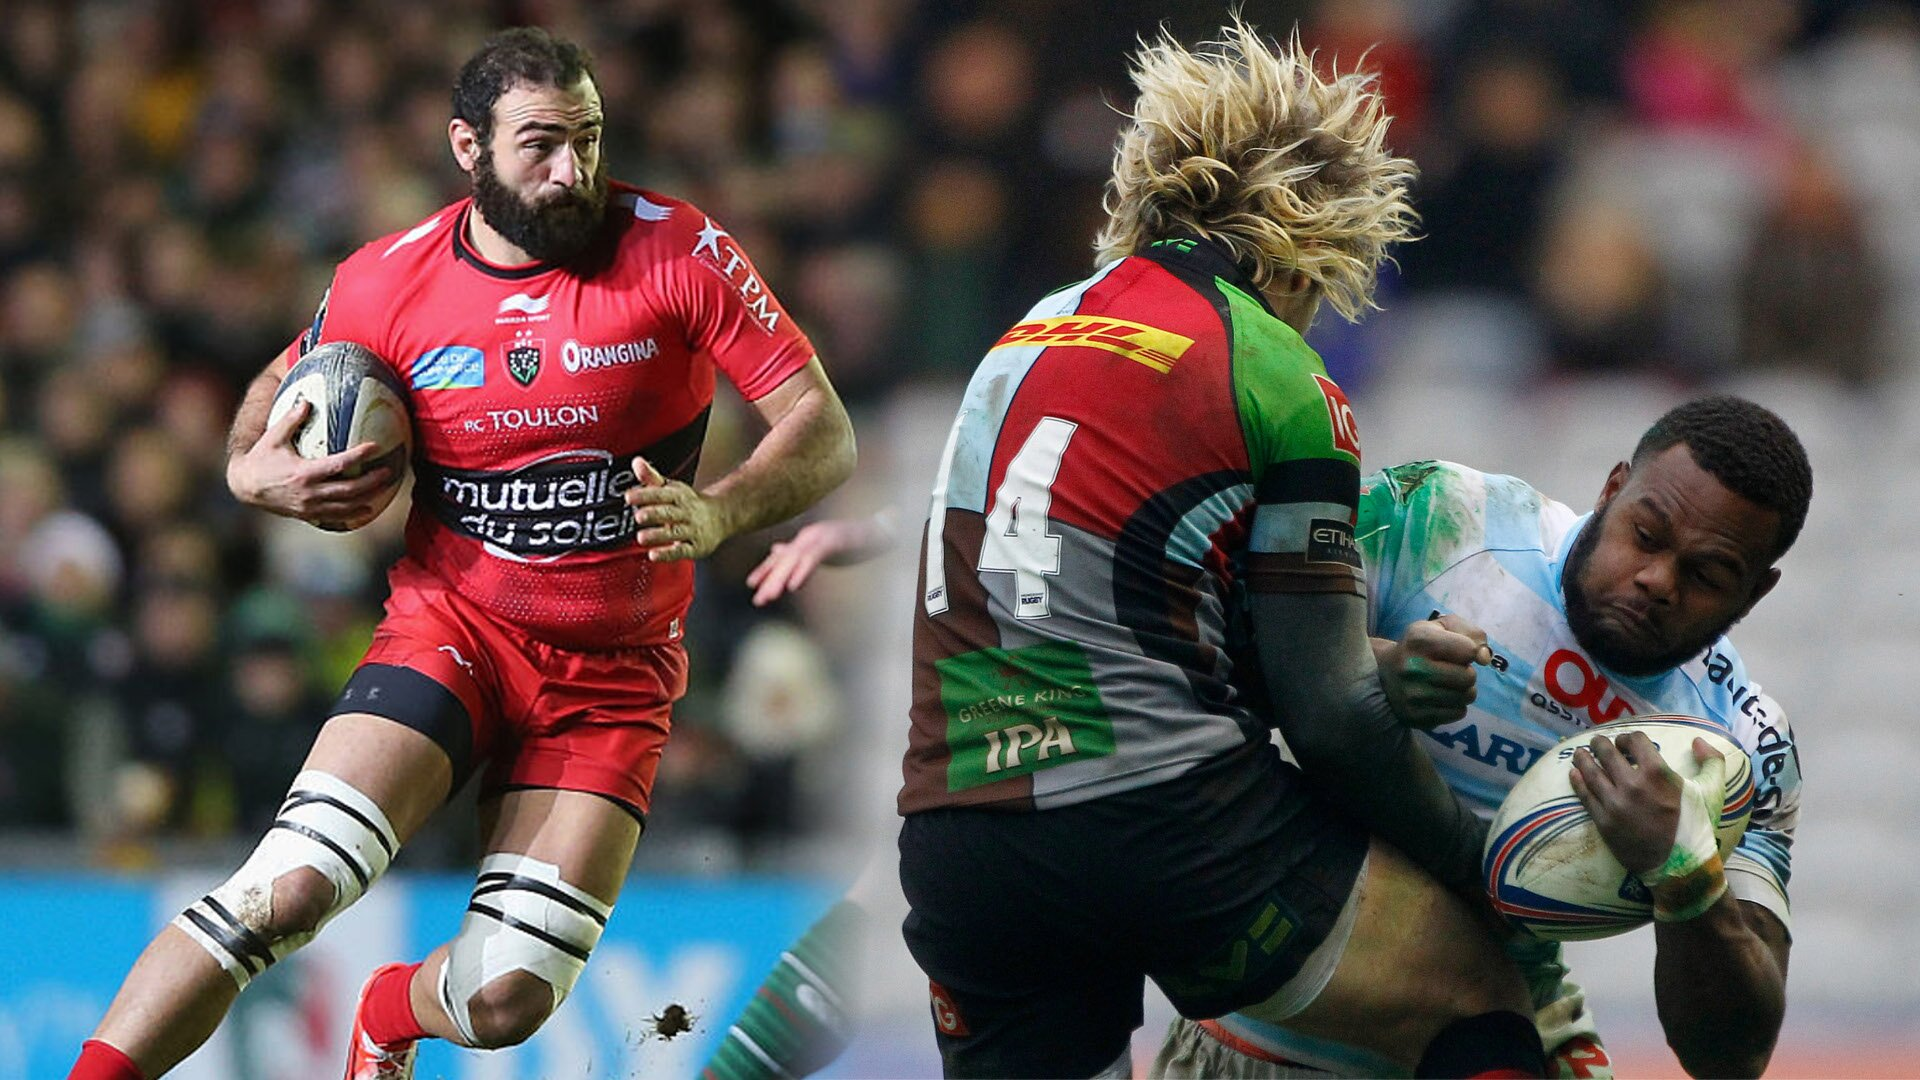 All seven Top 14 clubs and their injuries ahead of the opening Champions Cup weekend